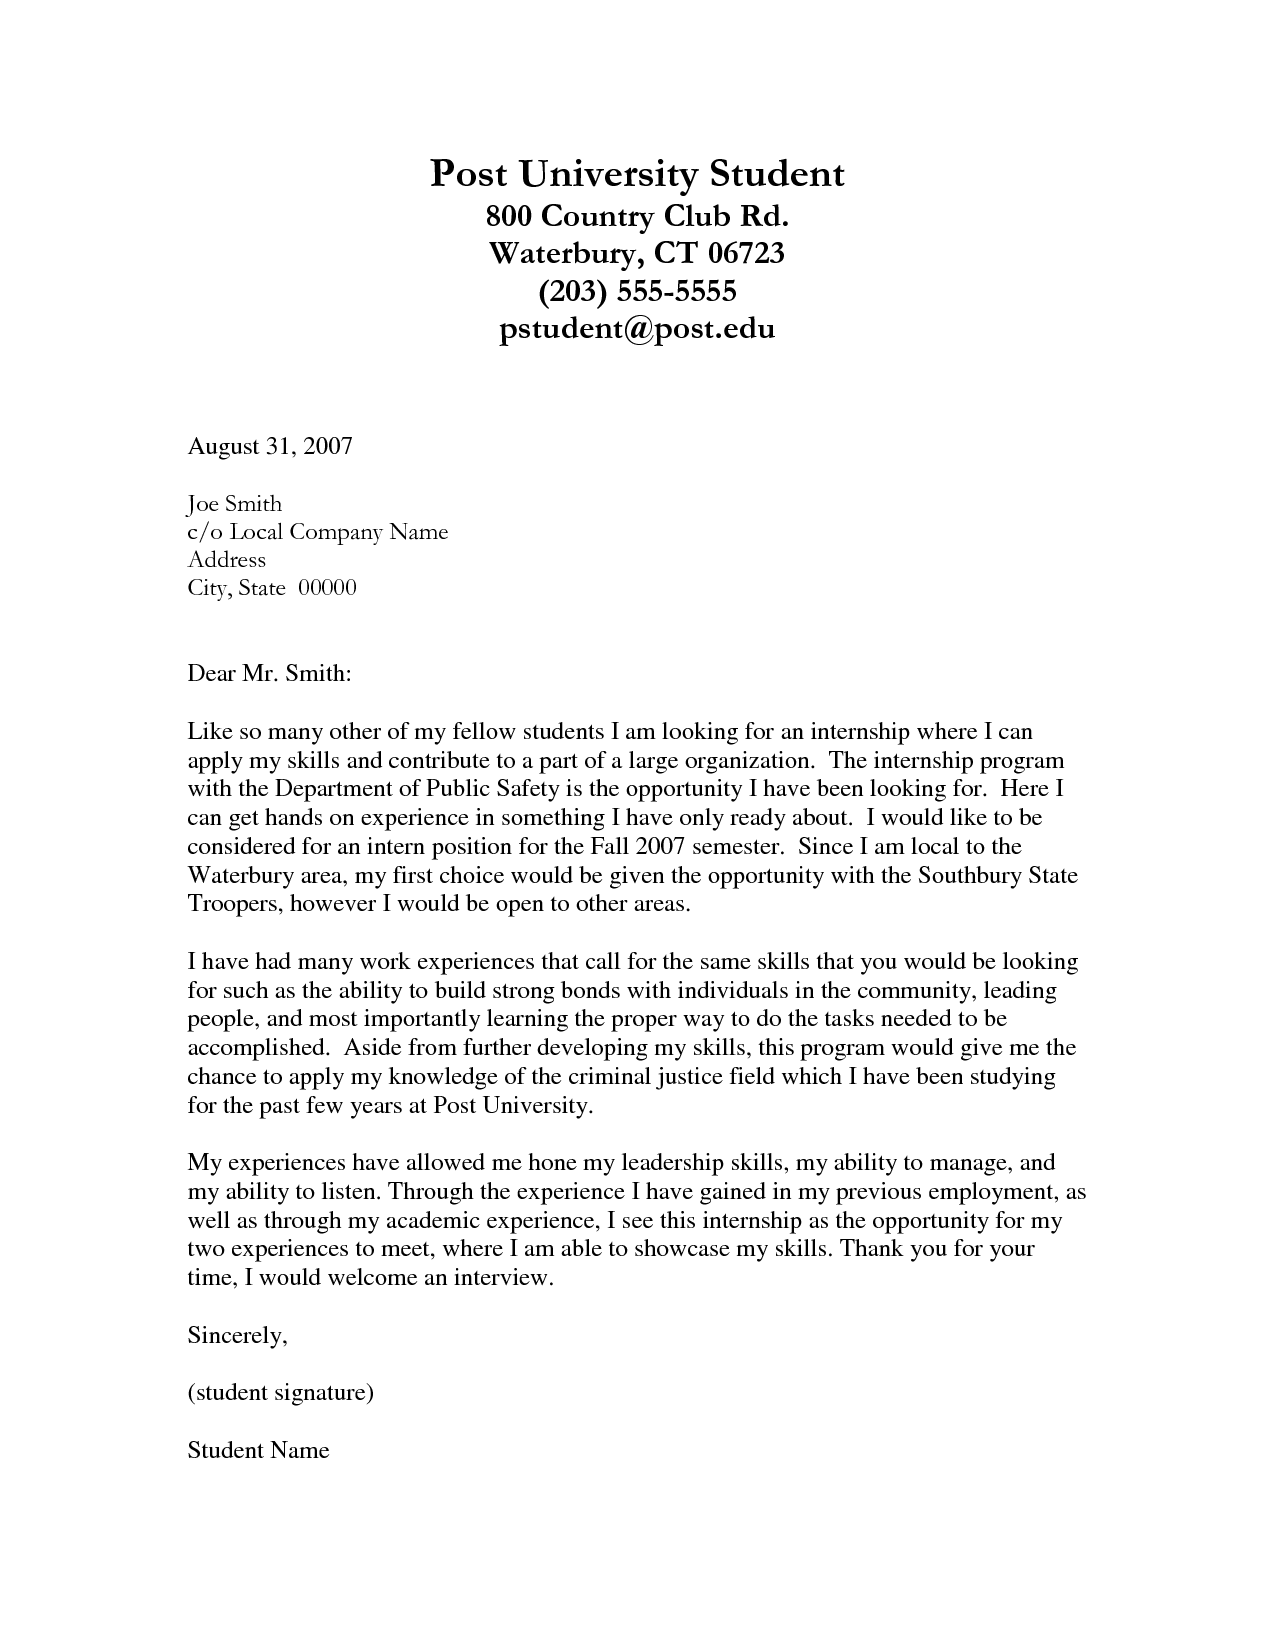 Cover letter template youth central coverlettertemplate also rh pinterest